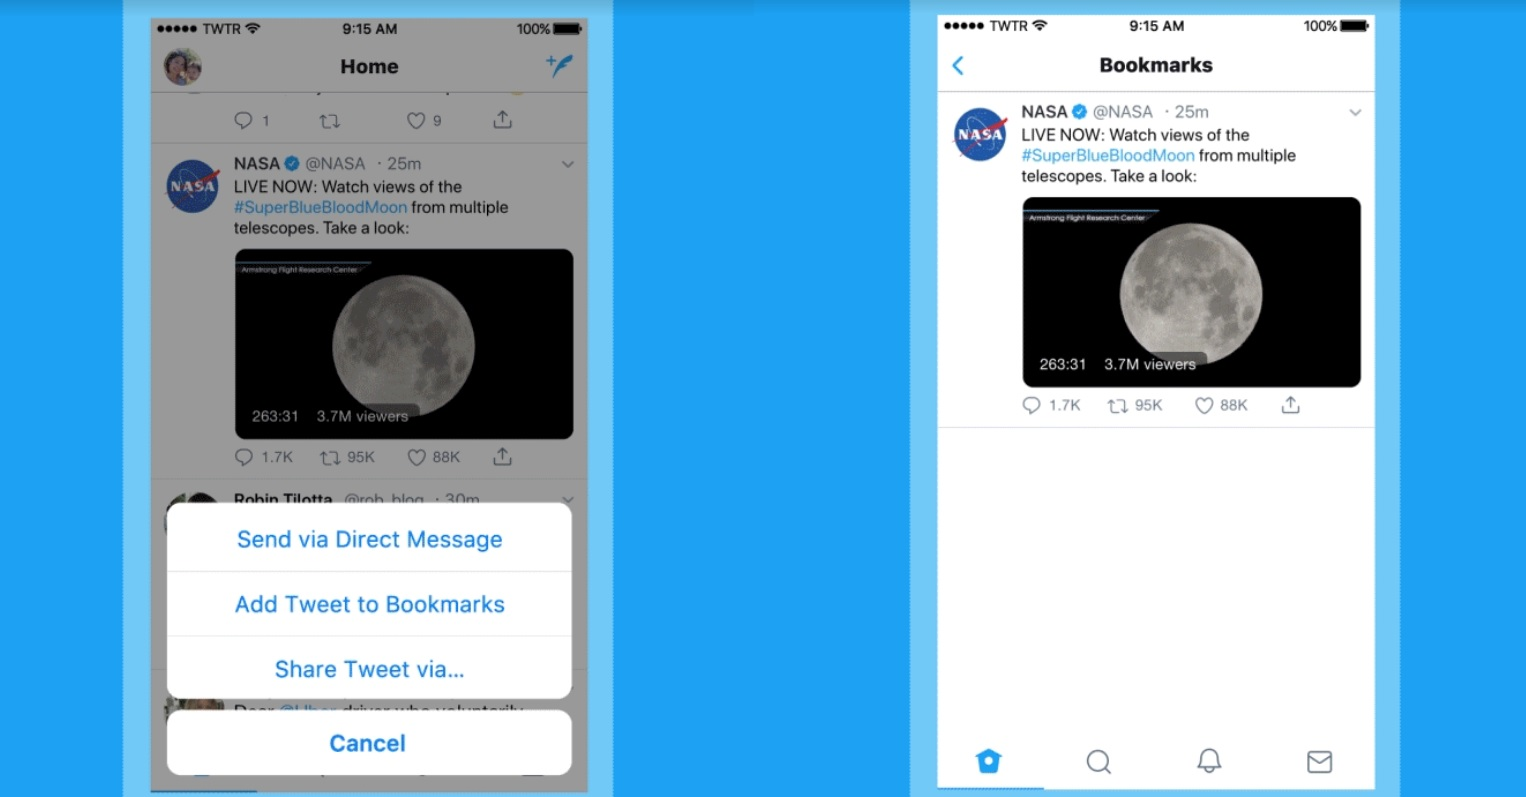 Twitter adds new features to bookmark and share your favorite tweets